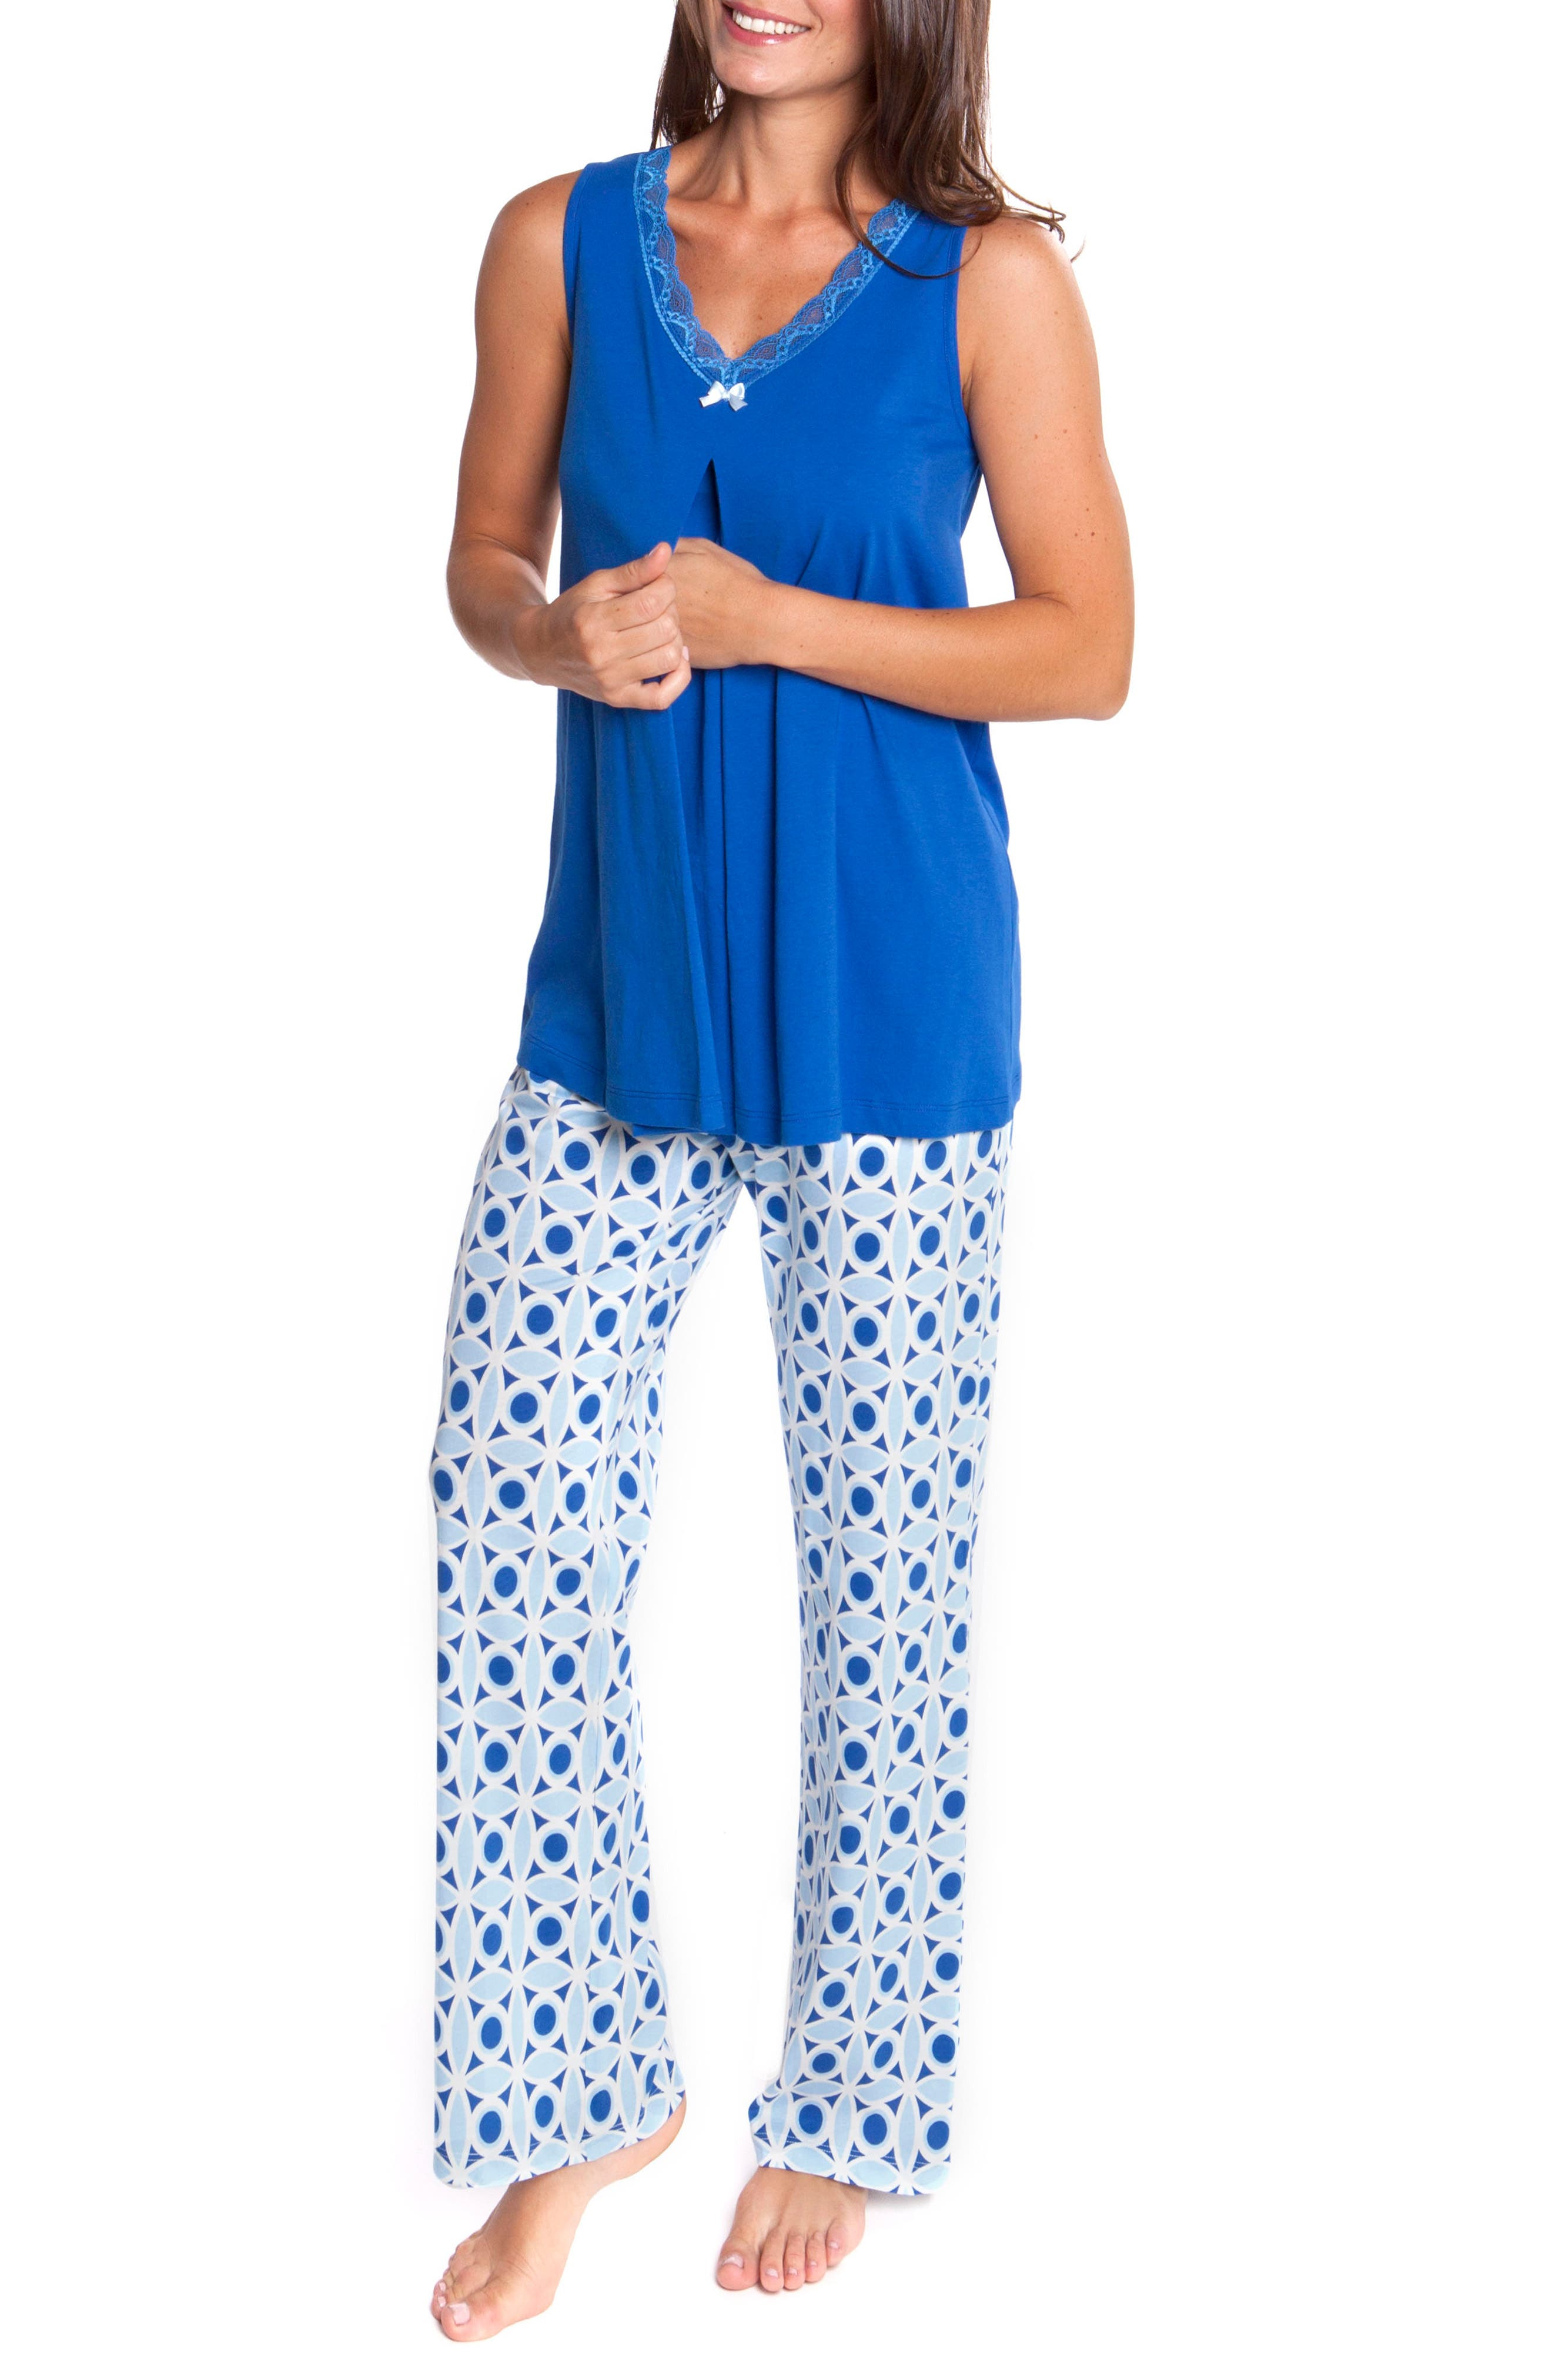 Olian 4-Piece Maternity/Nursing Sleepwear Set